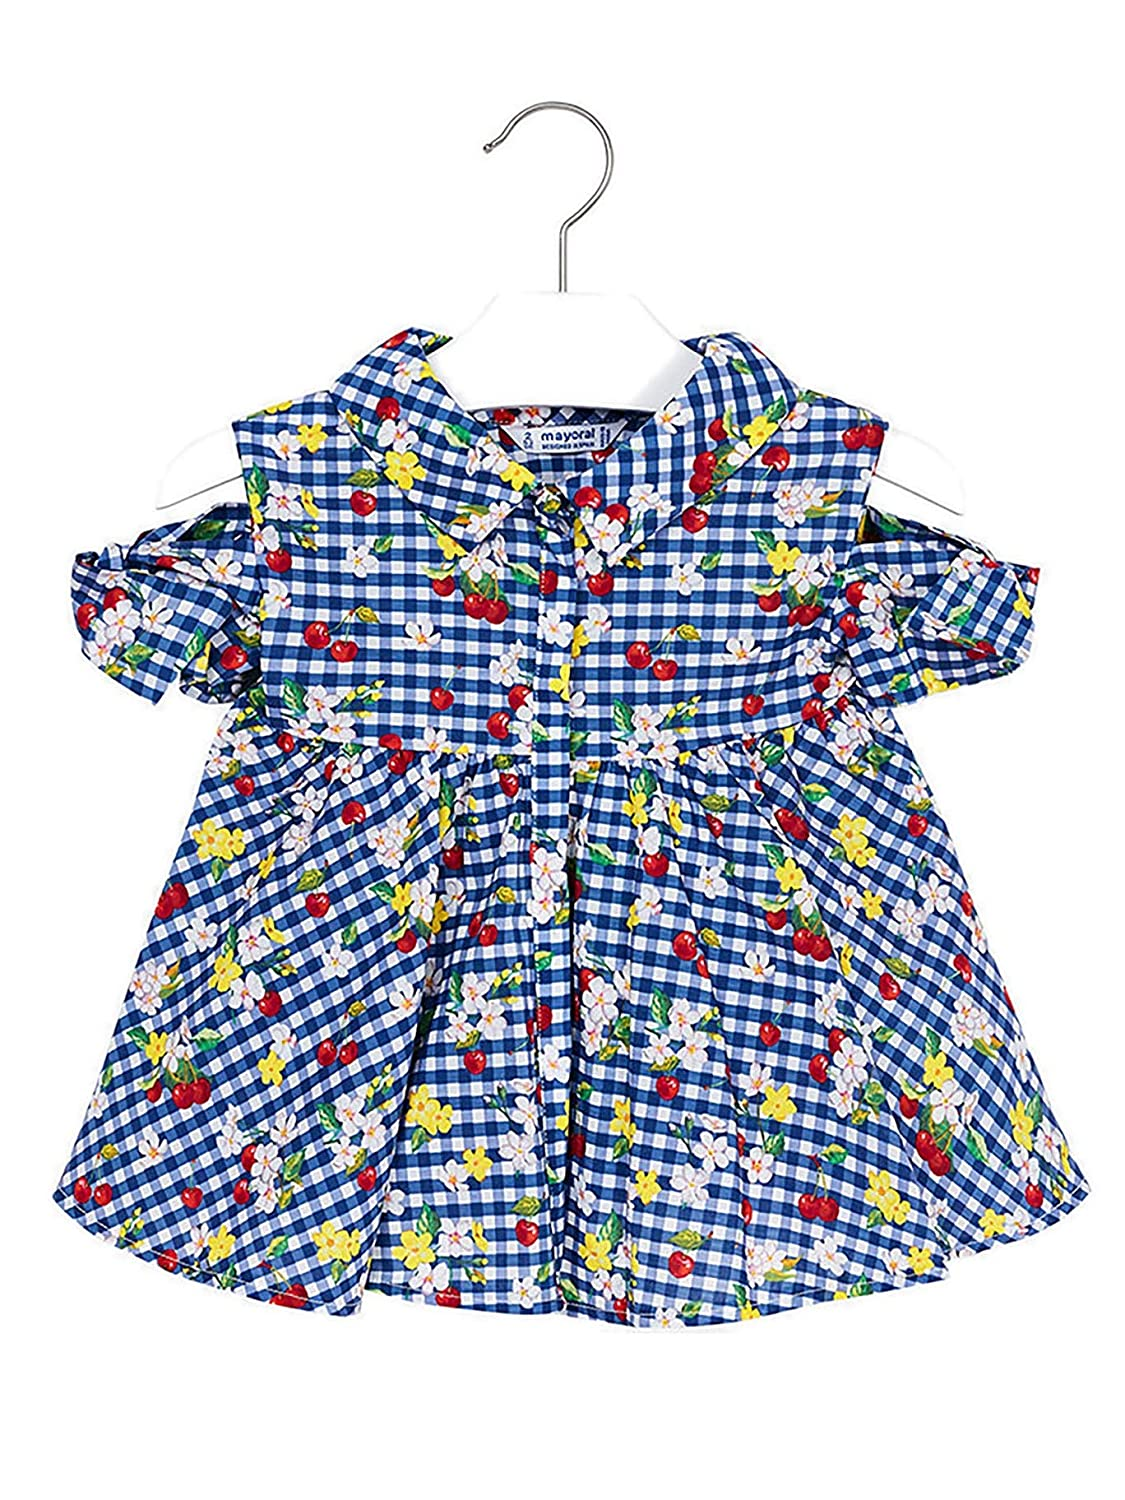 Printed Blouse for Girls 3108 Mayoral Blue